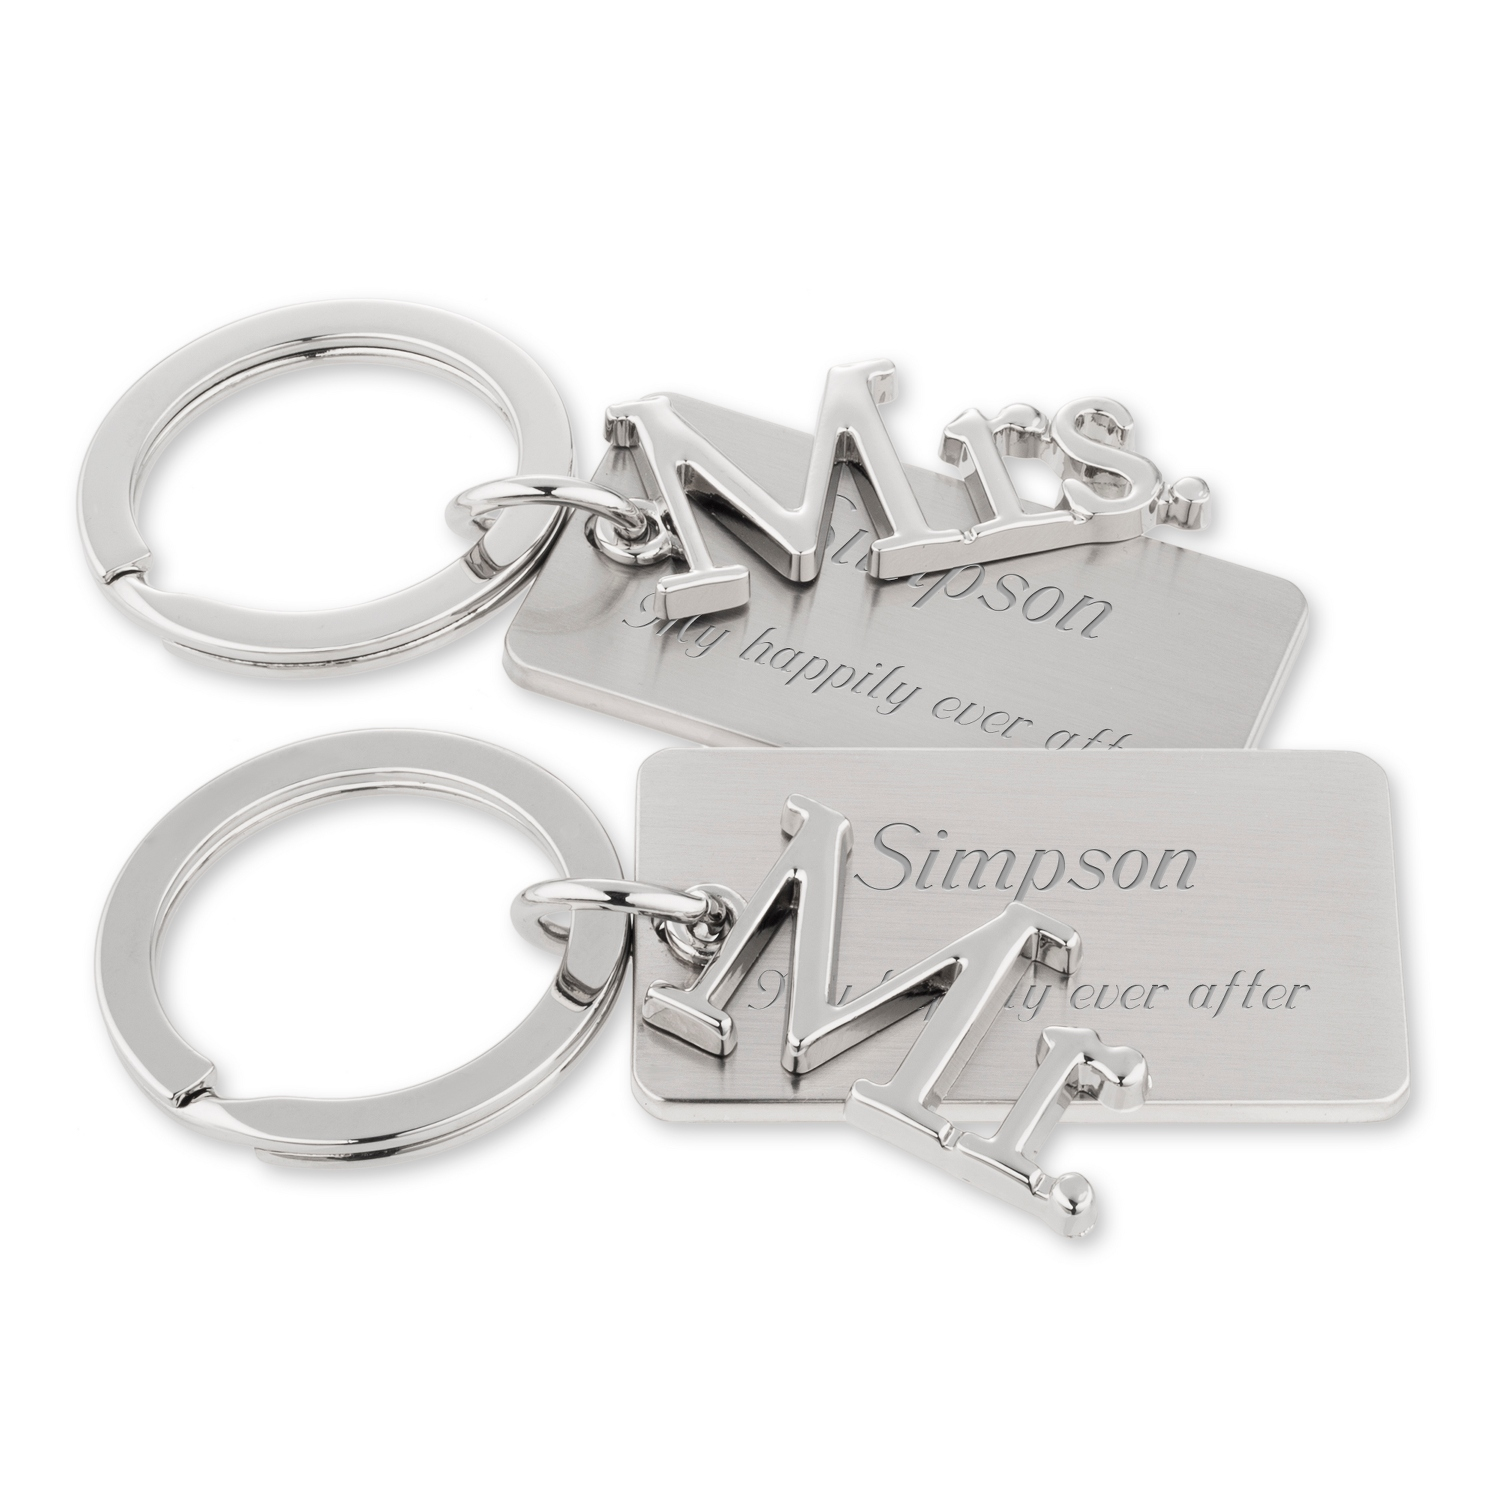 Mr and Mrs Key Chains